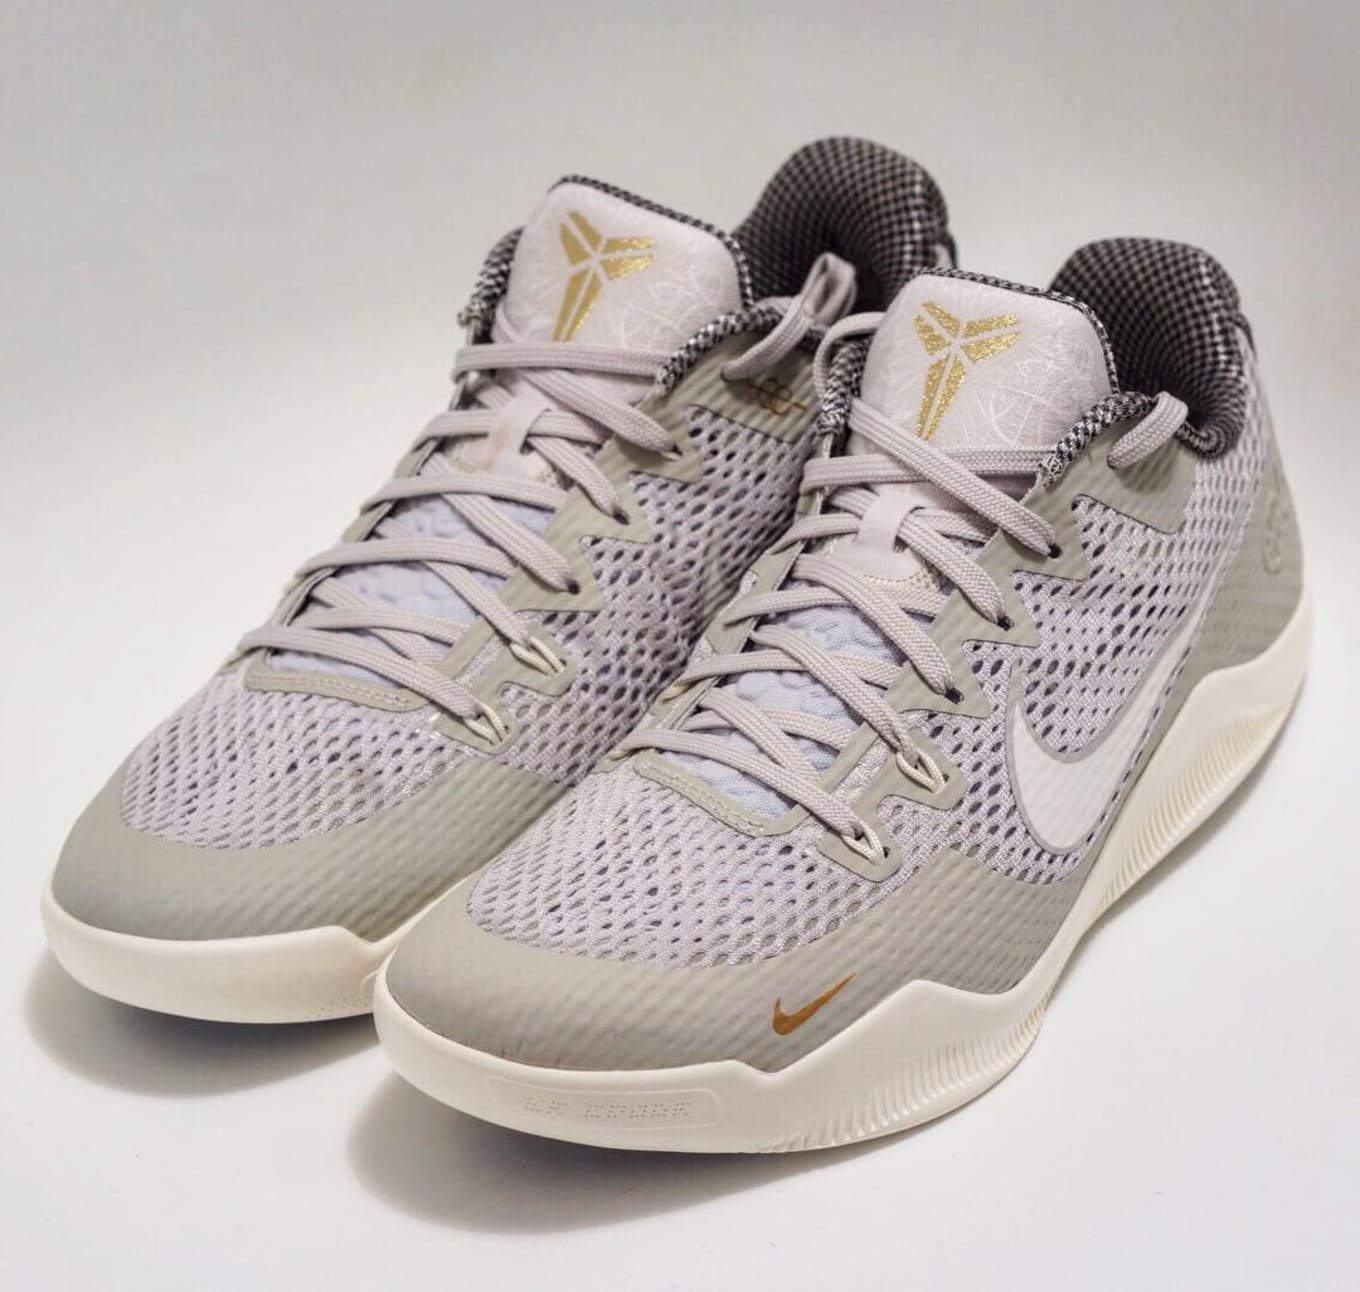 ccf070d9638c Quai 54 Nike Kobe 11 Friends   Family